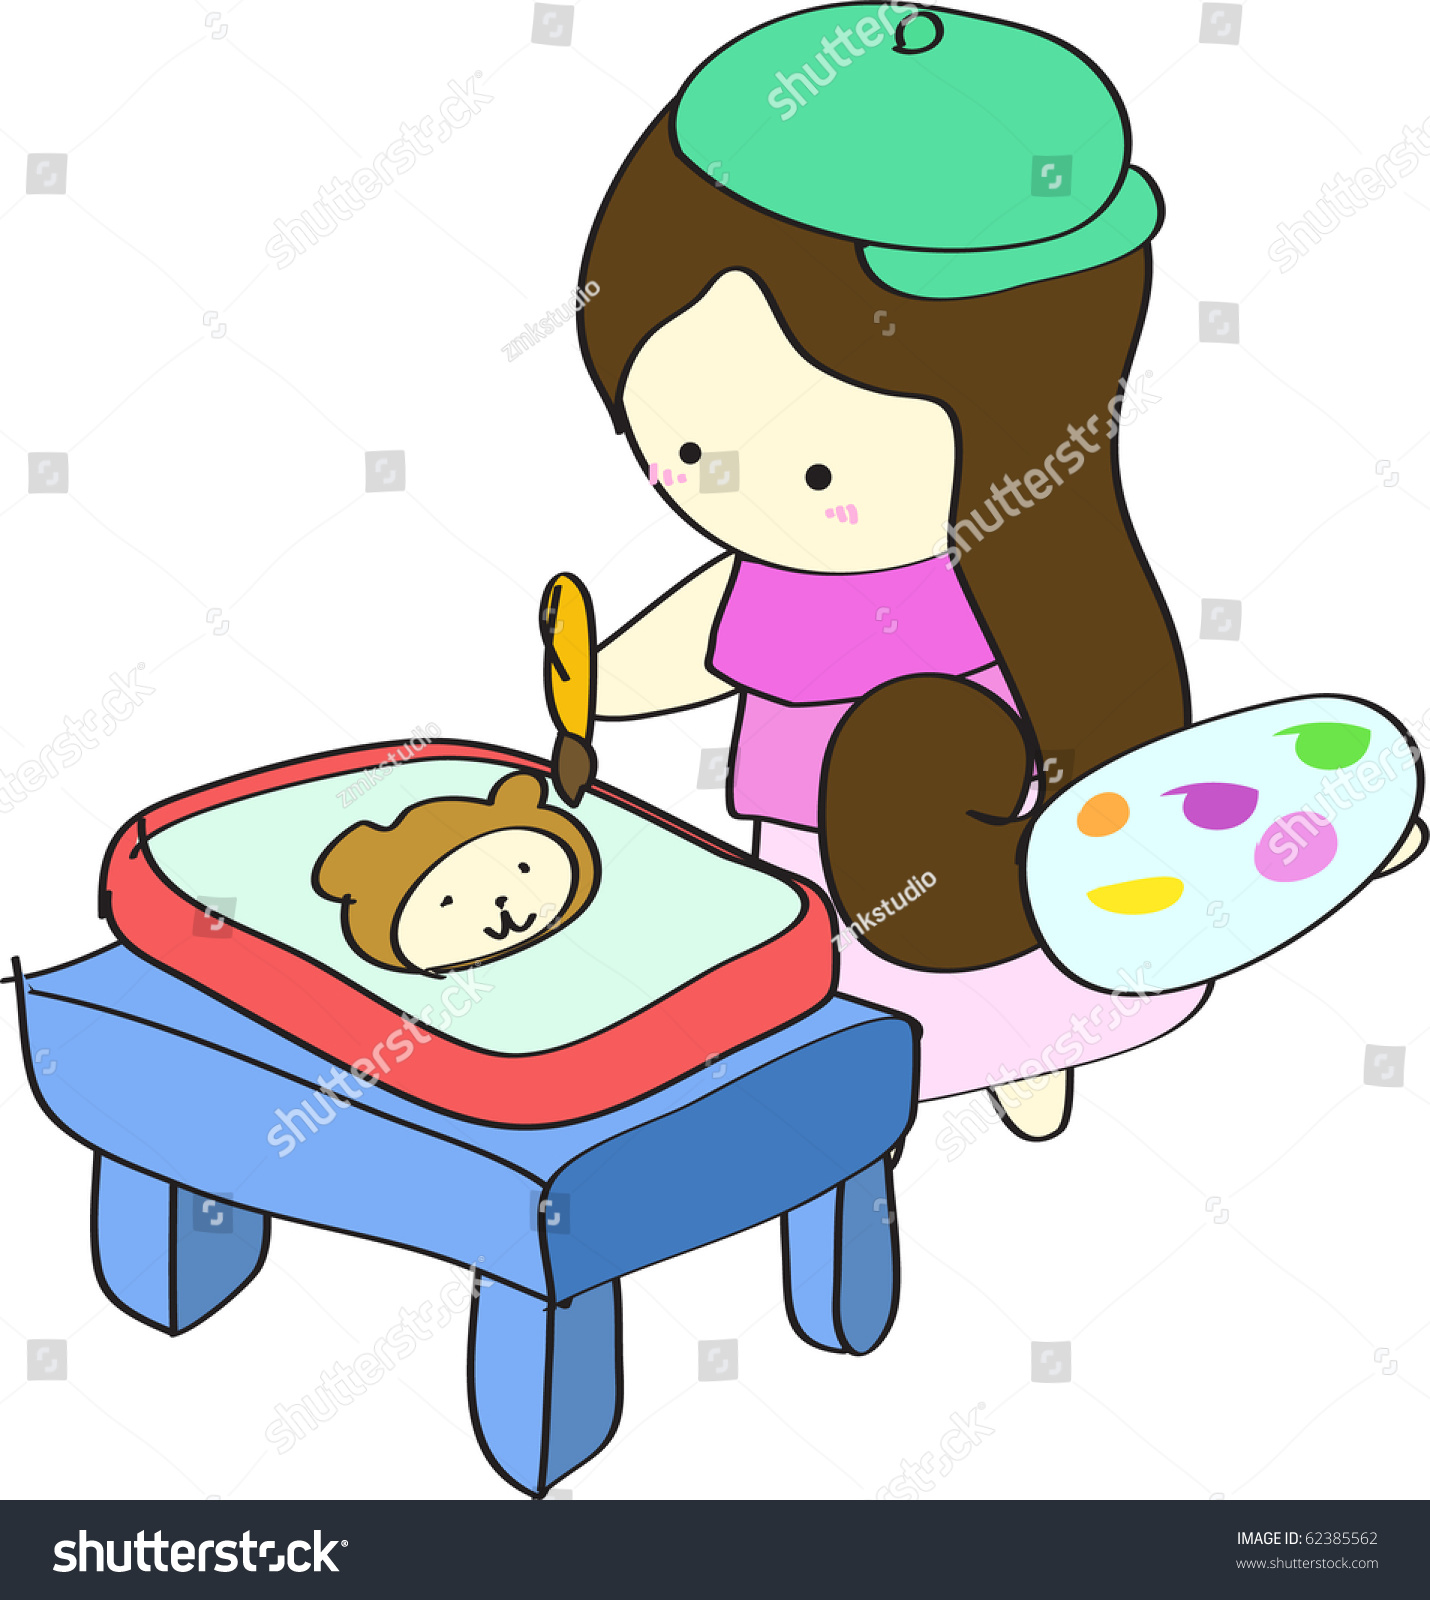 young girl kid artist painting a cute bear picture on drawing plate on table cartoon vector - Cartoon Kid Drawing